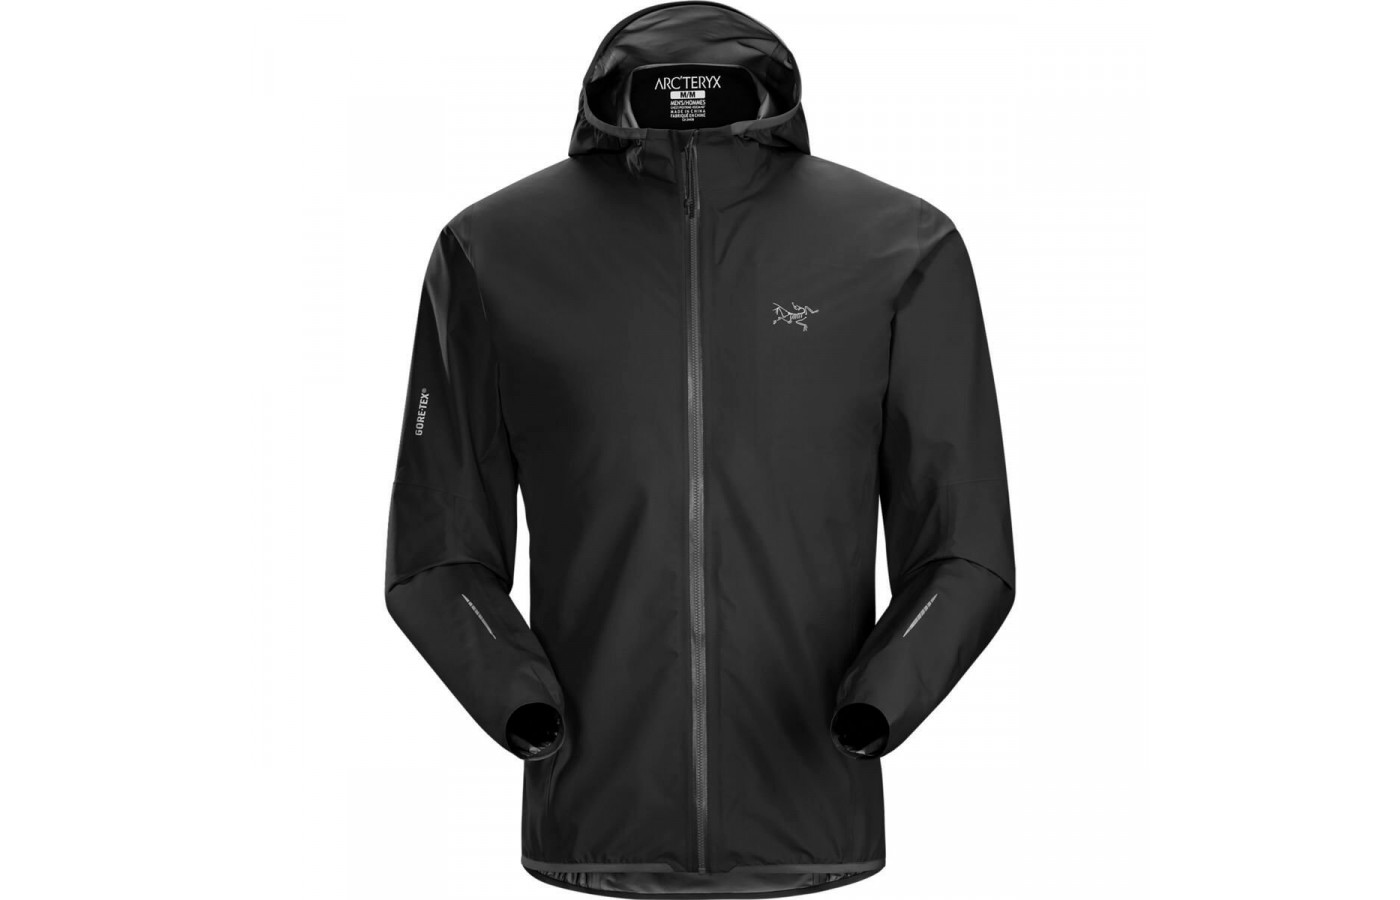 The carbon copy version of the Arc'teryx Norvan Jacket is visually appealing